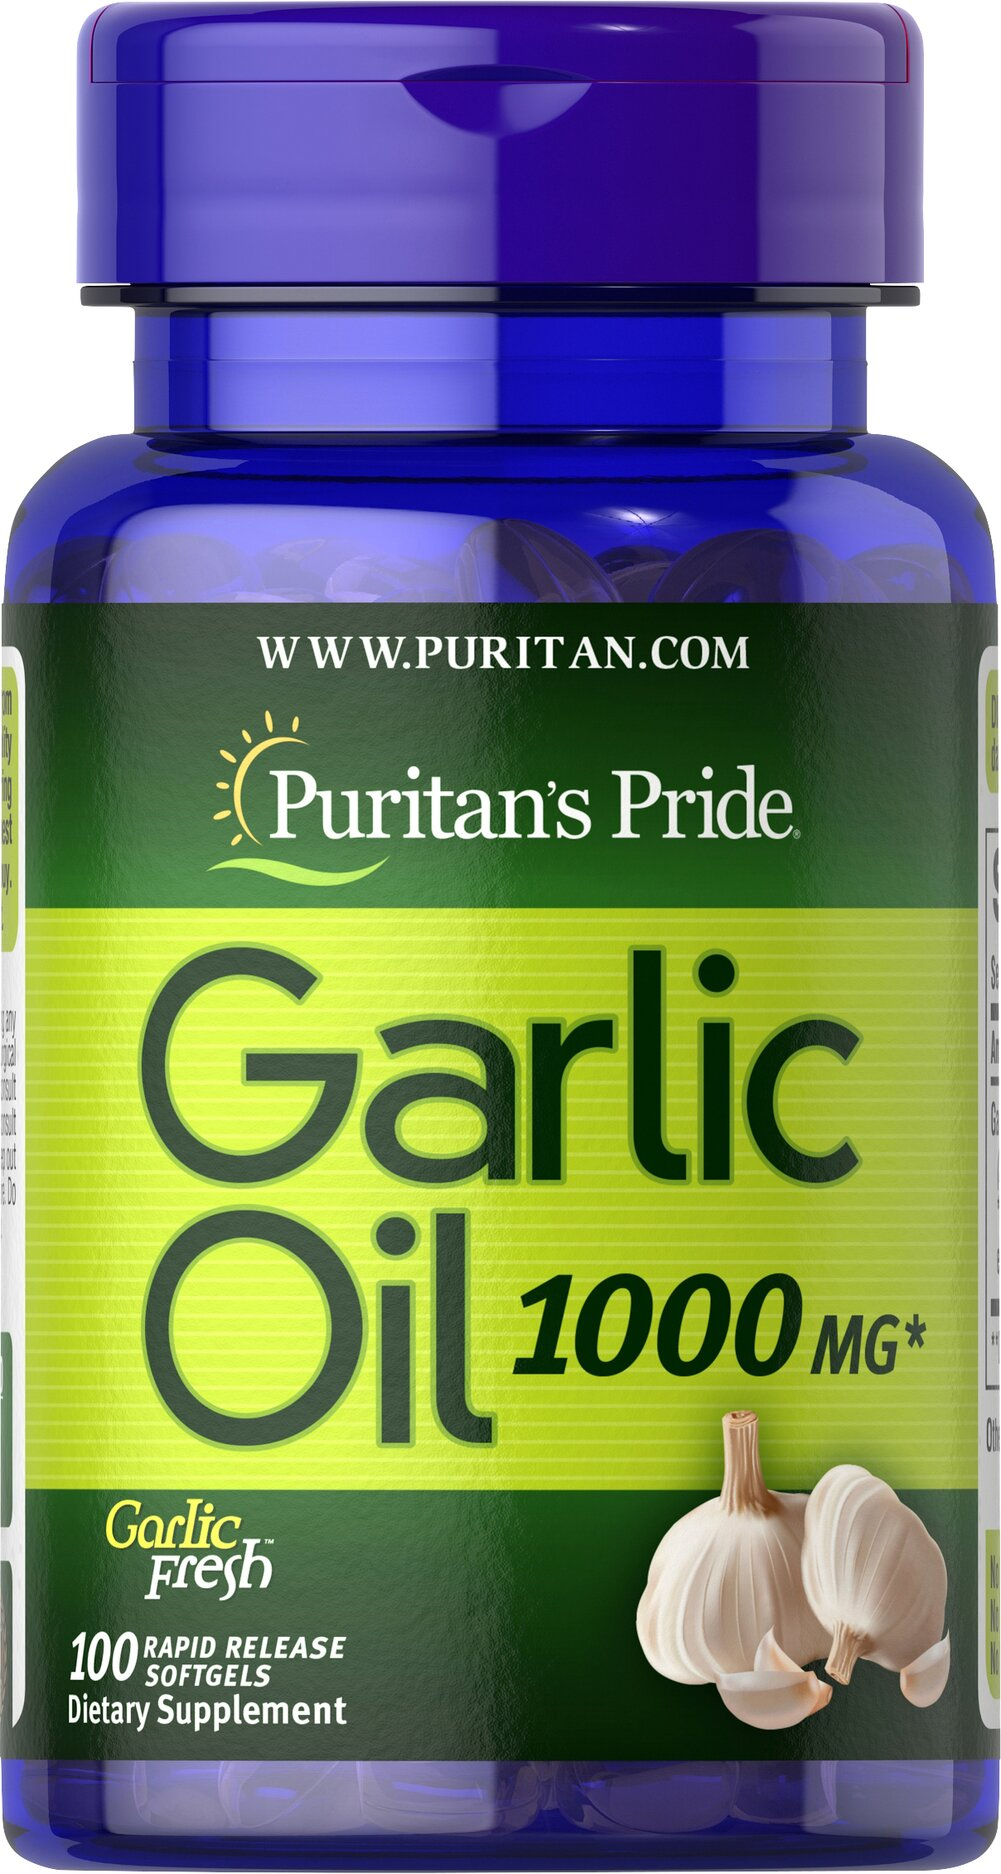 Garlic Oil 1000 mg  100 Rapid Release Softgels 1000 mg $6.99